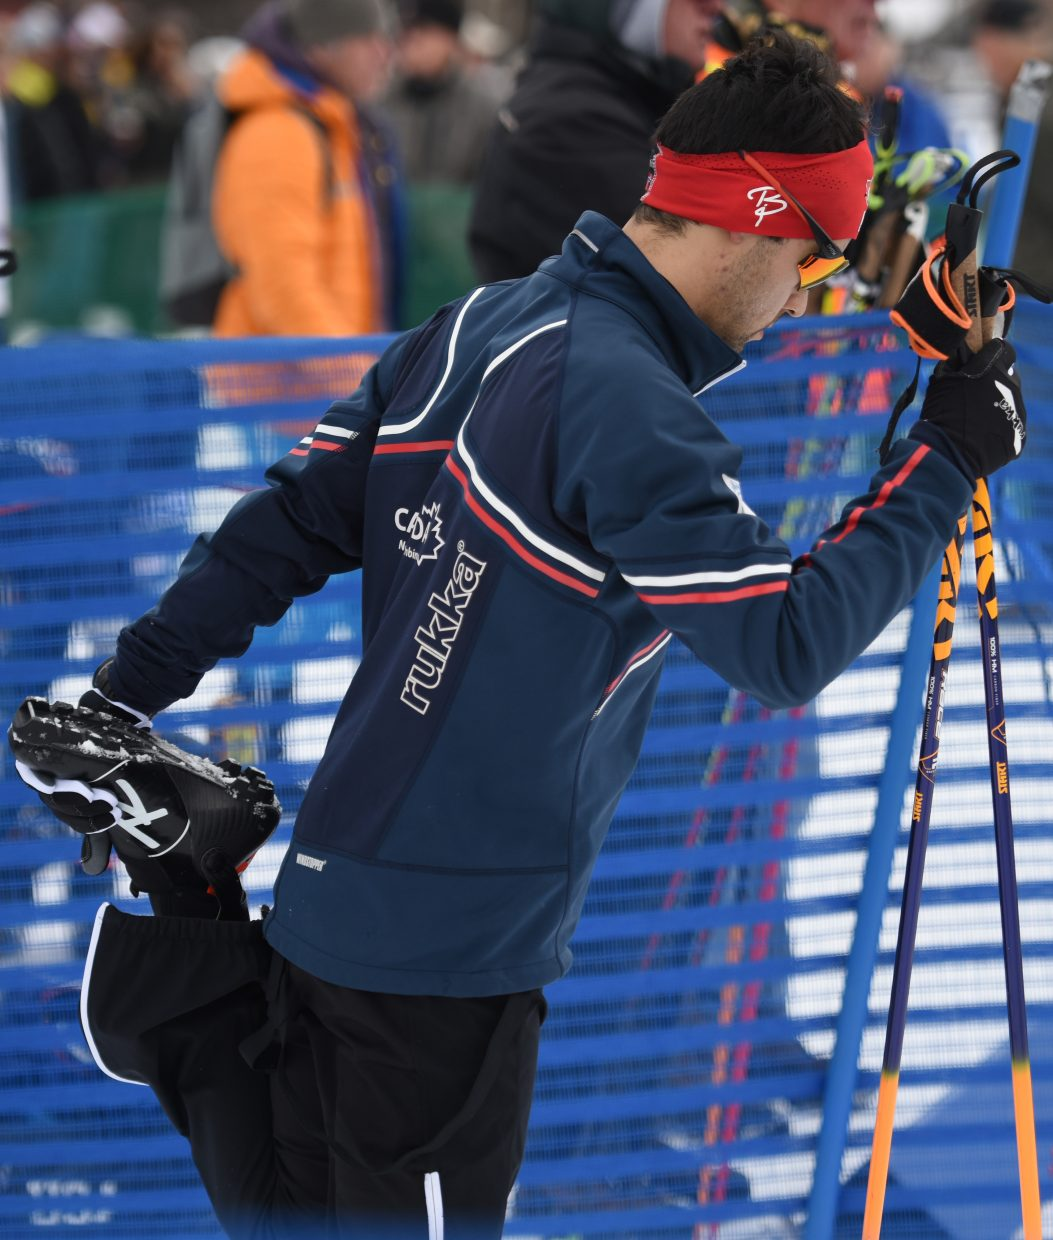 Canada's Nathaniel Mah stretches ahead of Saturday's Continental Cup Nordic combined ski race in Steamboat Springs.